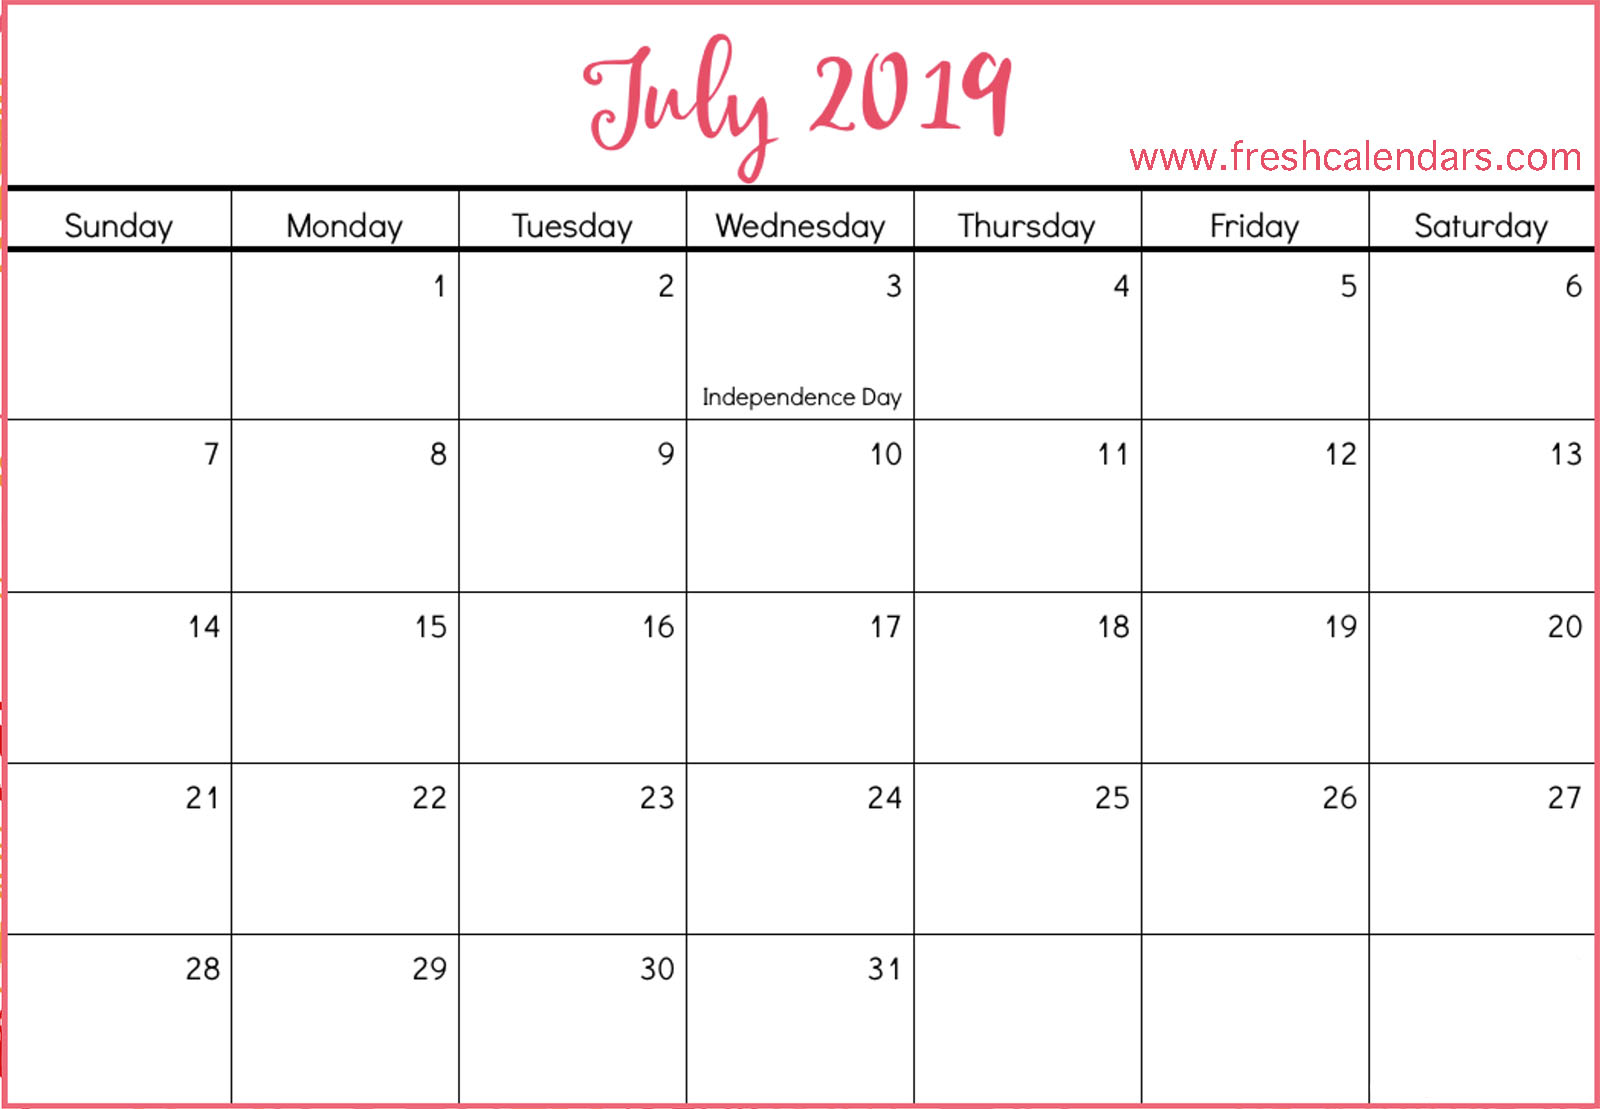 July 2019 Calendar Template Word